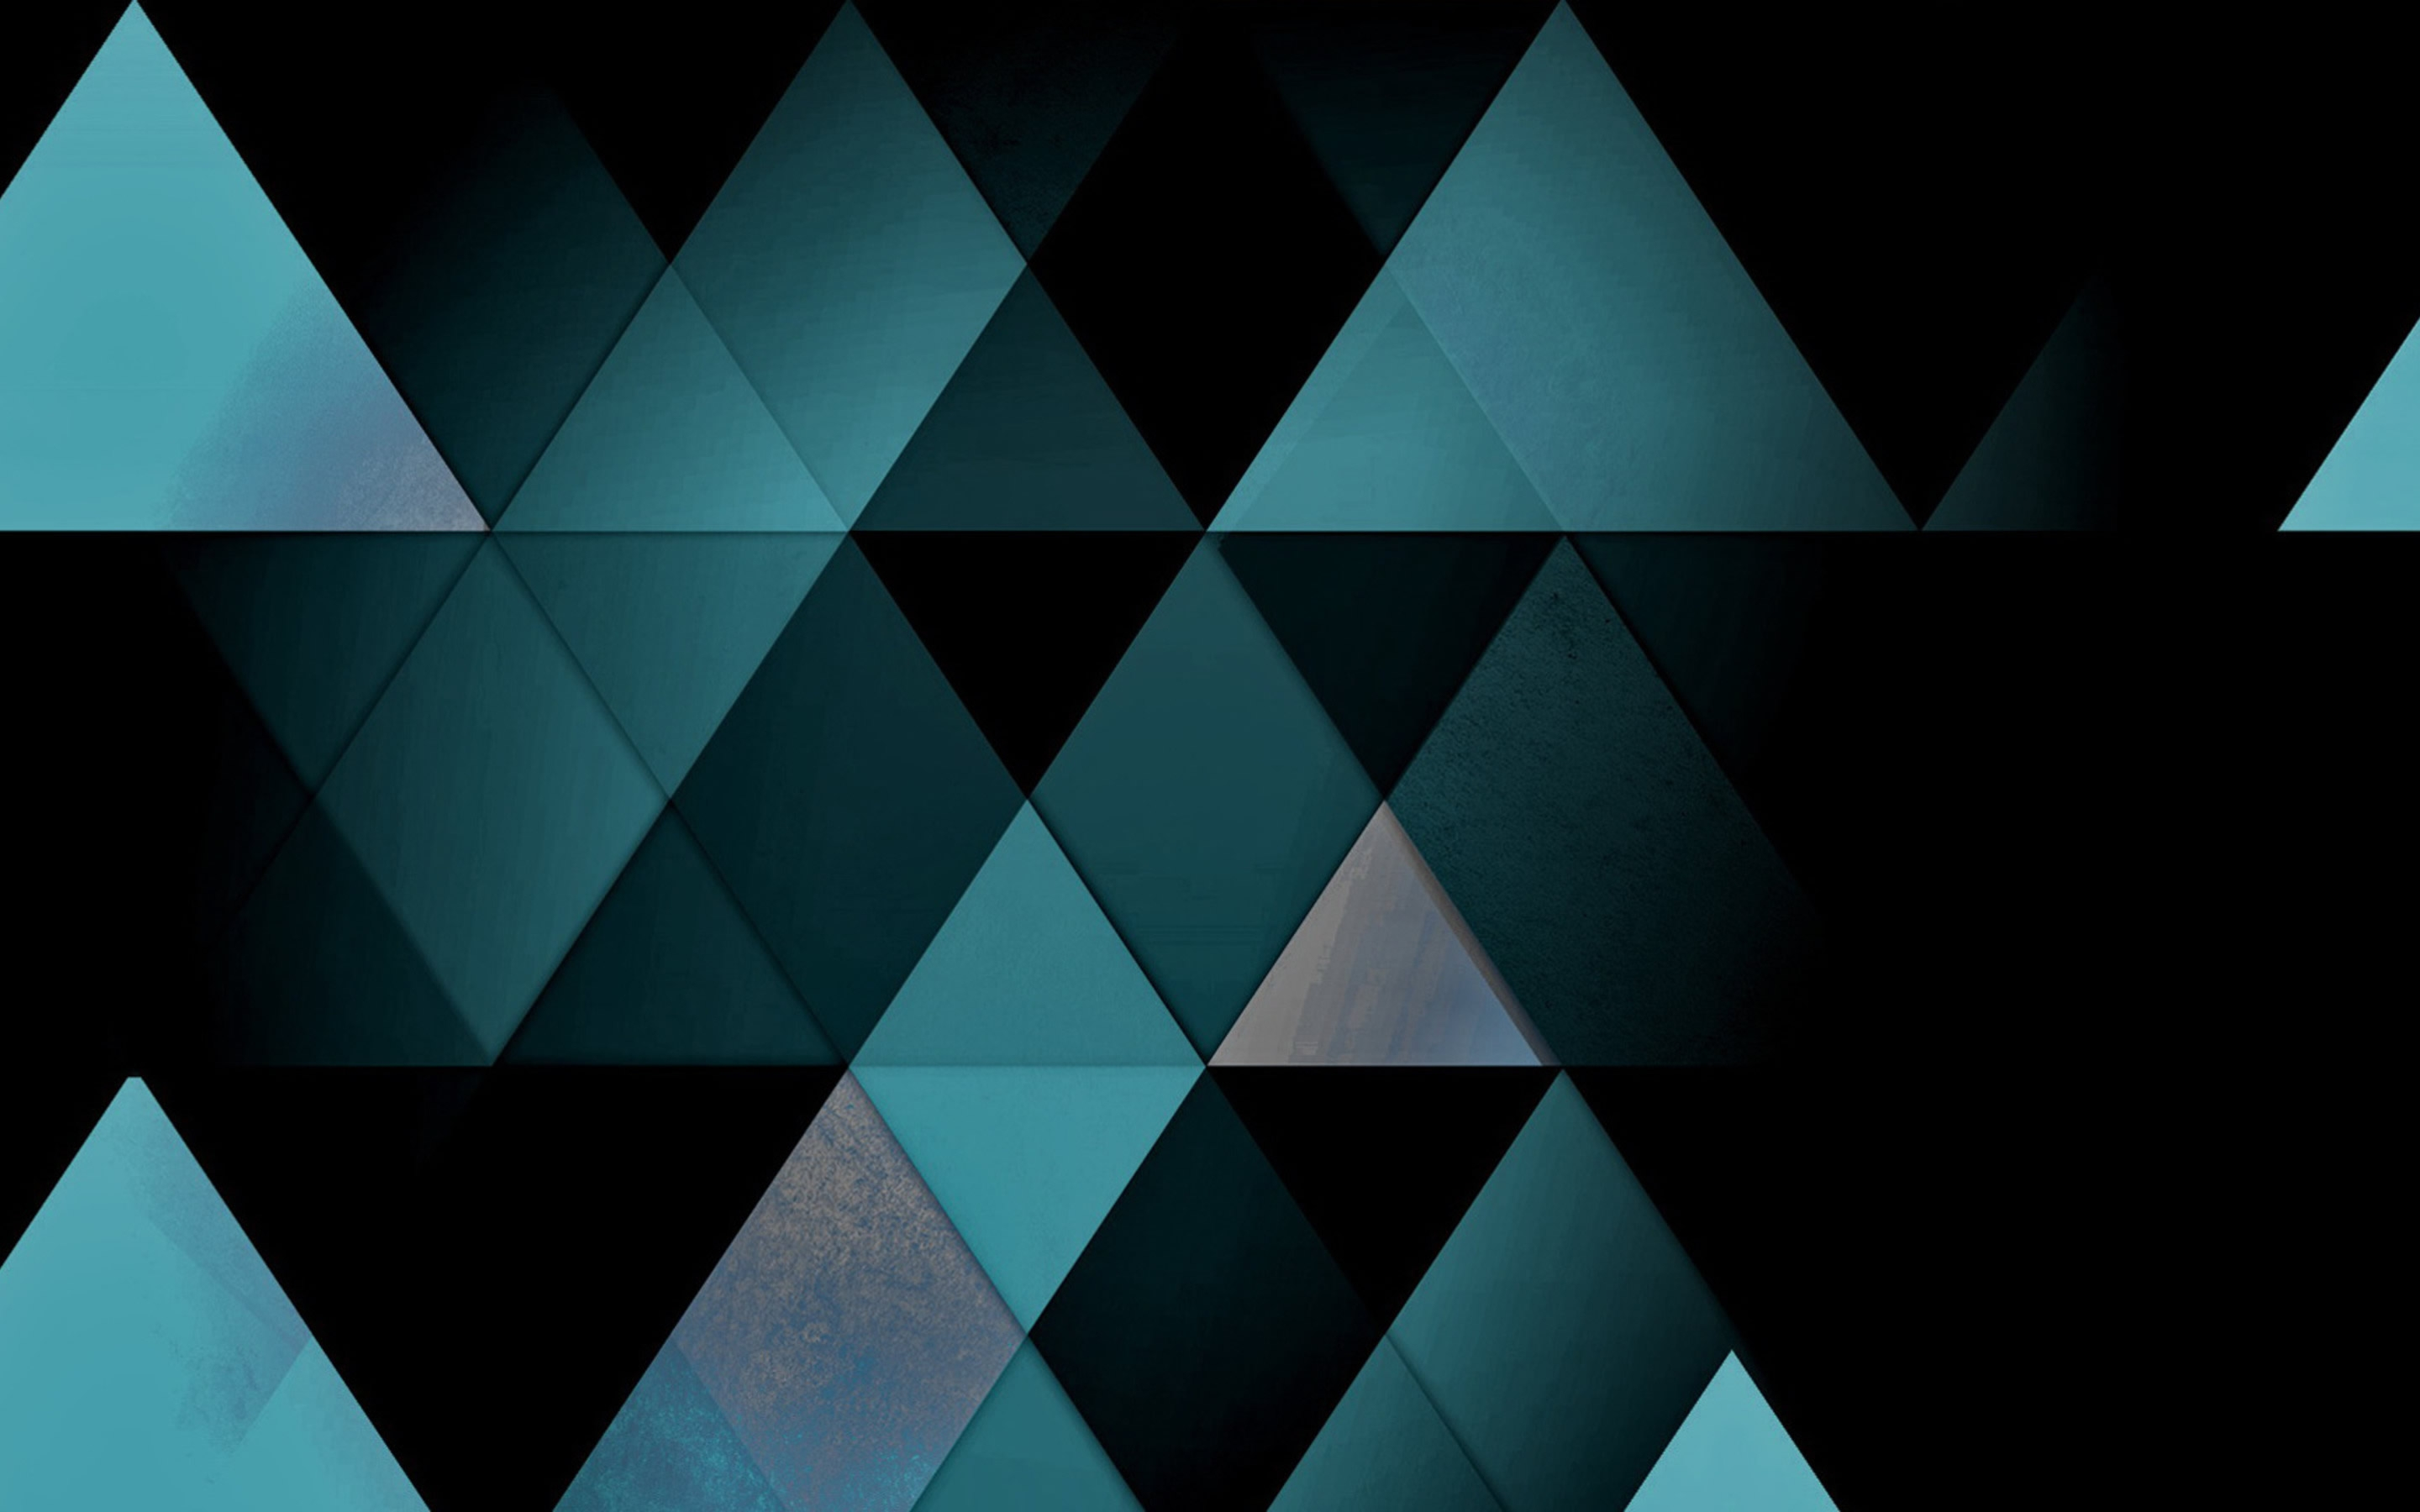 geometric wallpaper hd  20 HD Geometric Wallpapers